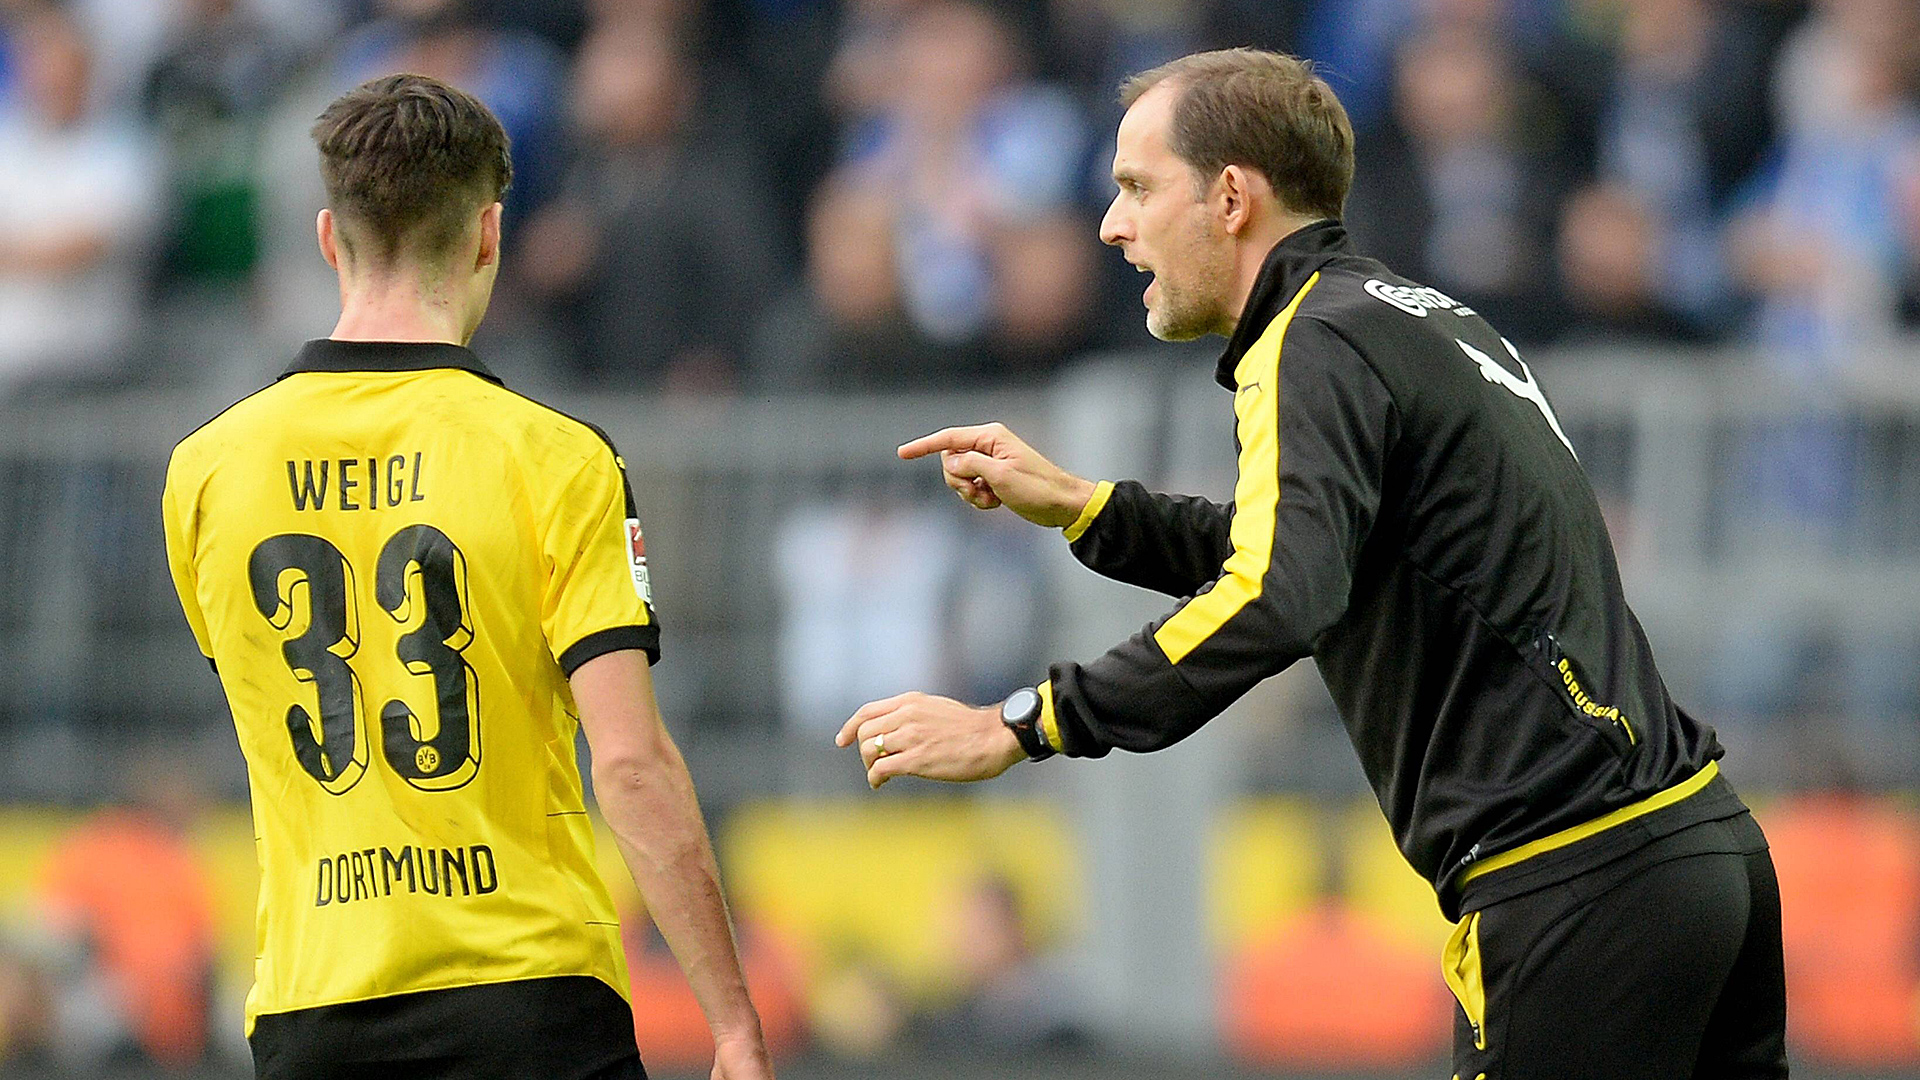 ONLY GERMANY Thomas Tuchel Julian Weigl Borussia Dortmund 11082015